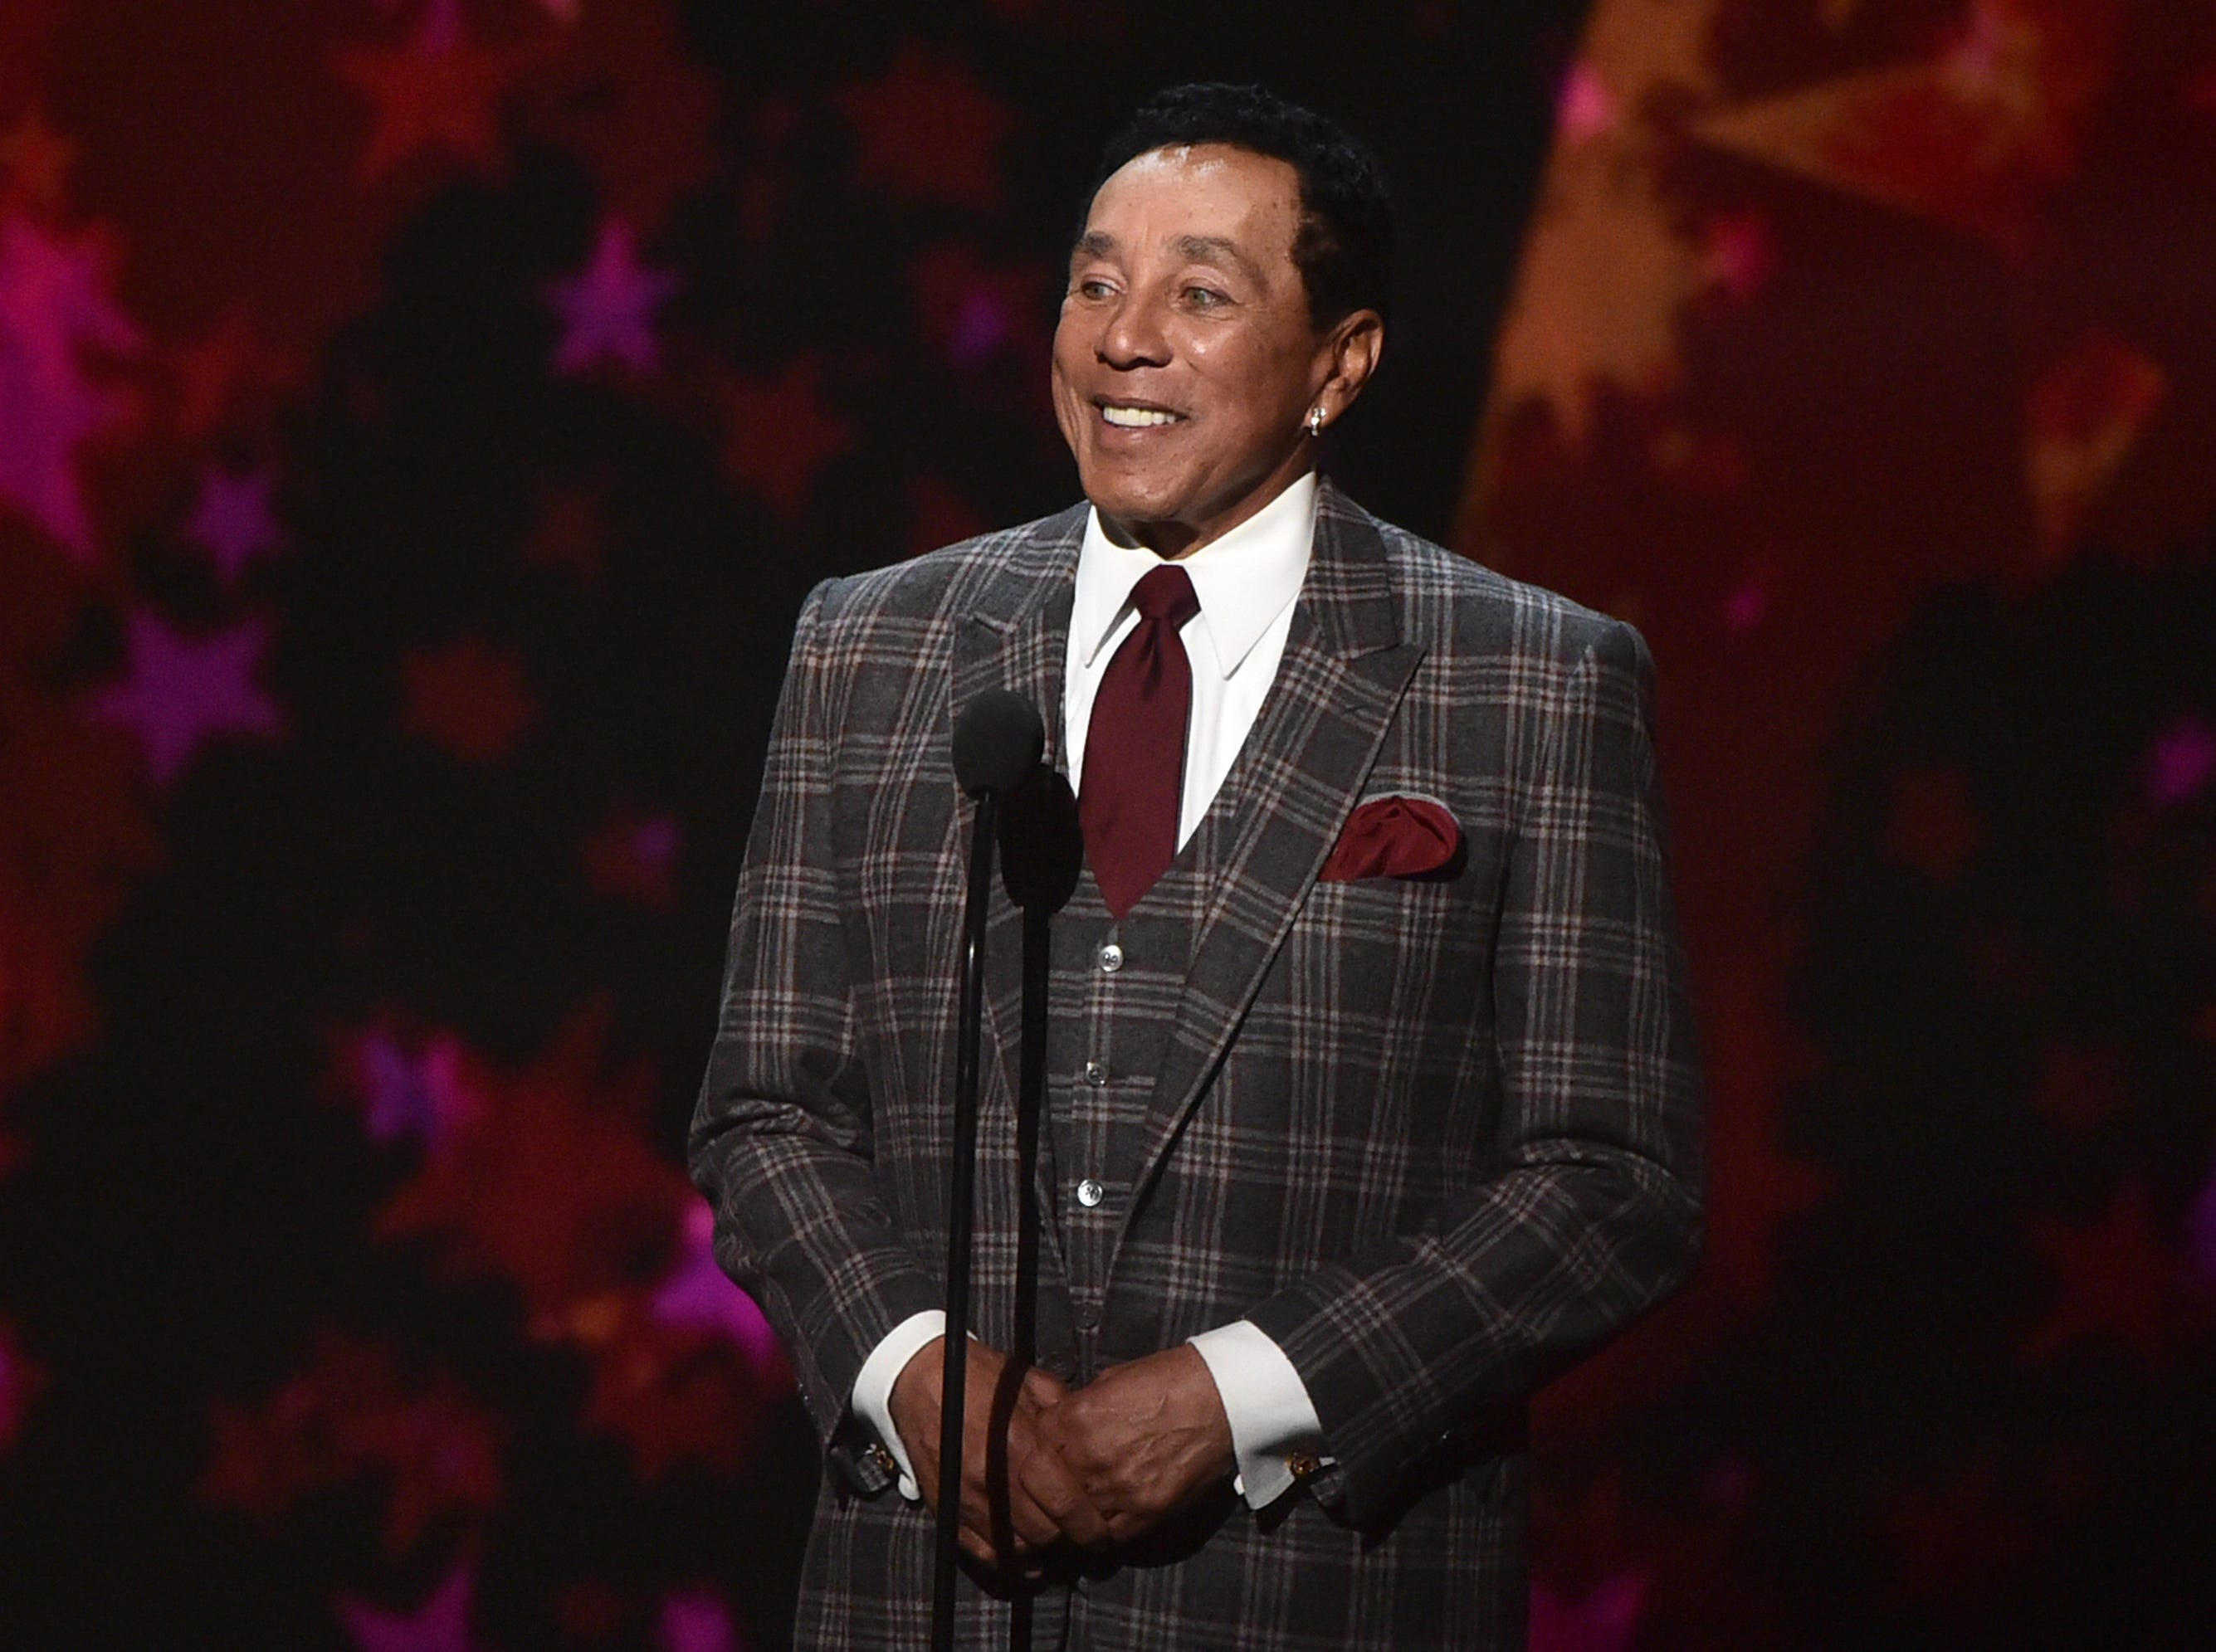 """LOS ANGELES, CA - JANUARY 13:  Smokey Robinson speaks at """"Aretha! A Grammy Celebration For the Queen Of Soul"""" at the Shrine Auditorium on Jan. 13, 2019, in Los Angeles, Calif."""